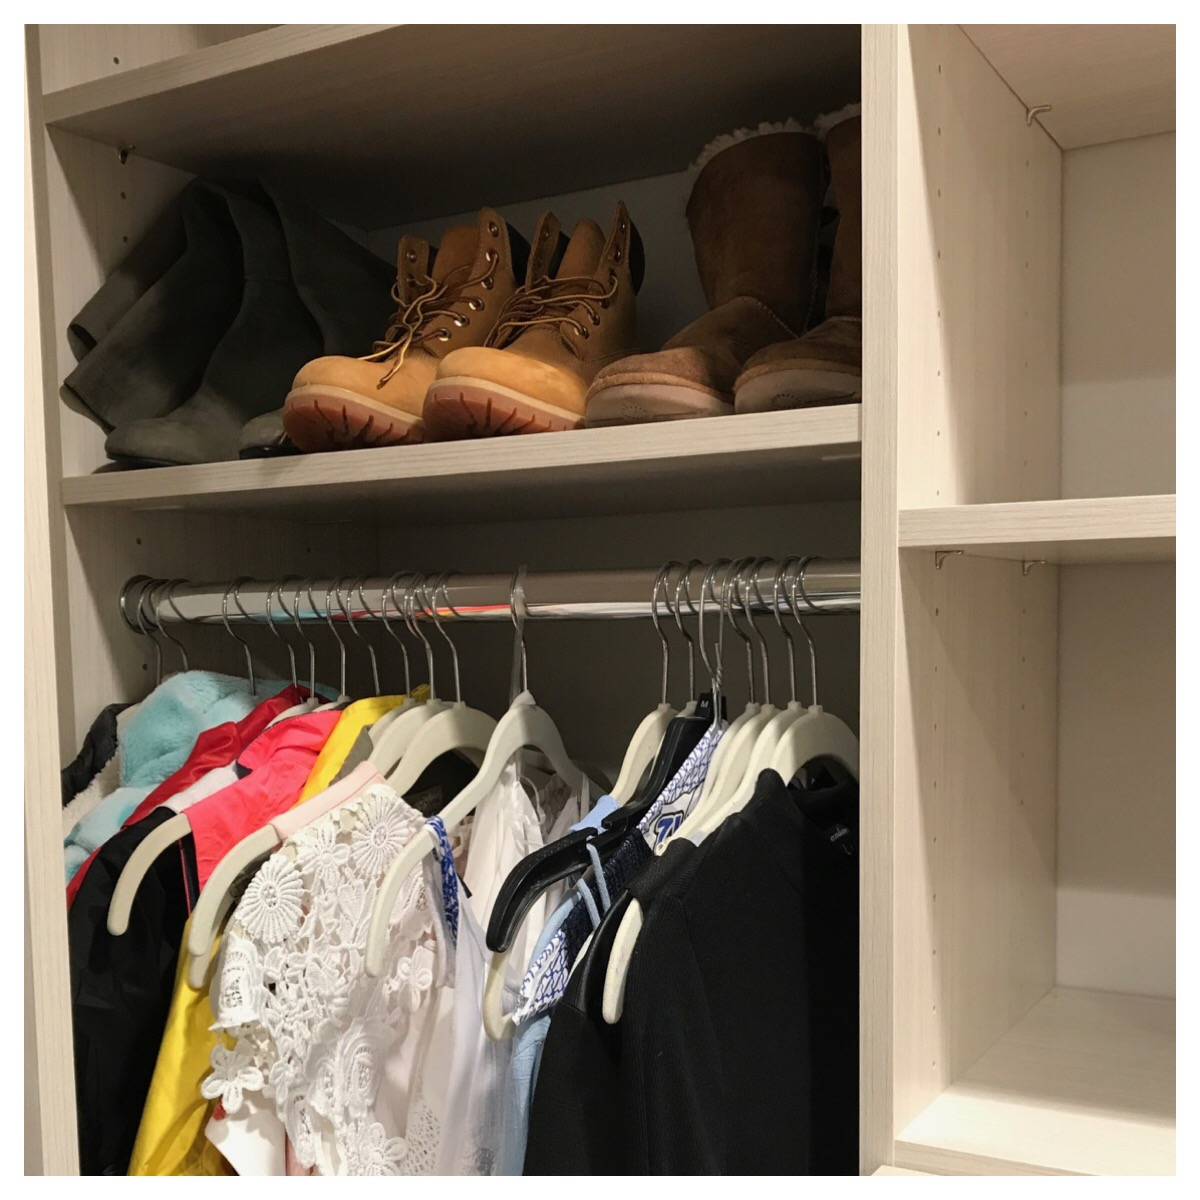 Closet systems give kids and teens a jump-start to an organized life and help them begin each day on the right foot.  Call Closets of Tulsa  today for a FREE consultation and 3-D closet design:  918.609.0214